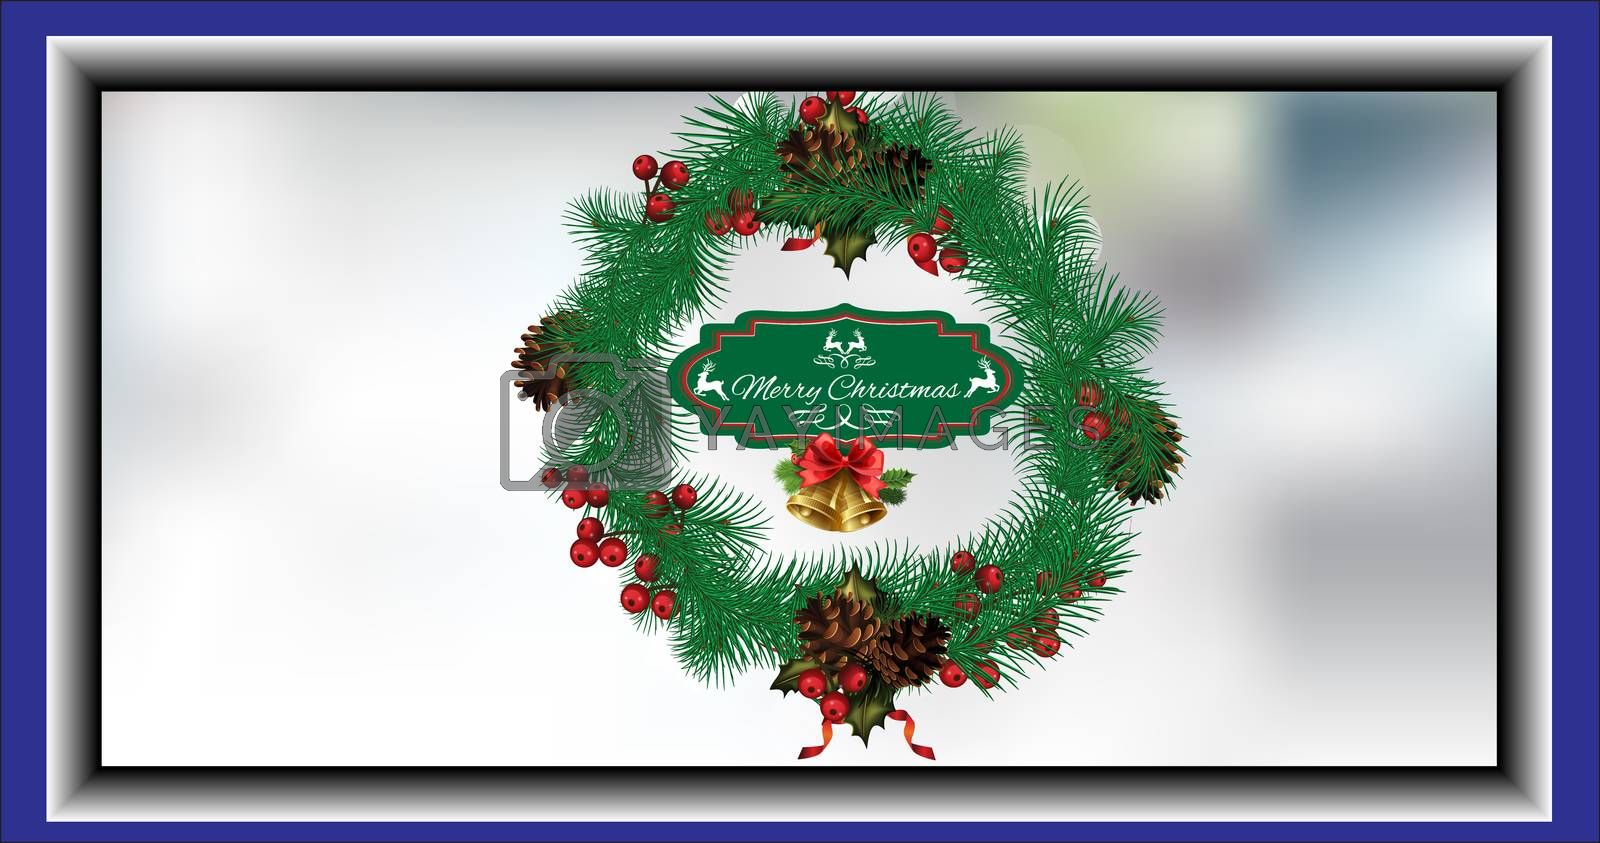 Christmas wreath card with fir cones, with the words Merry Christmas in the center